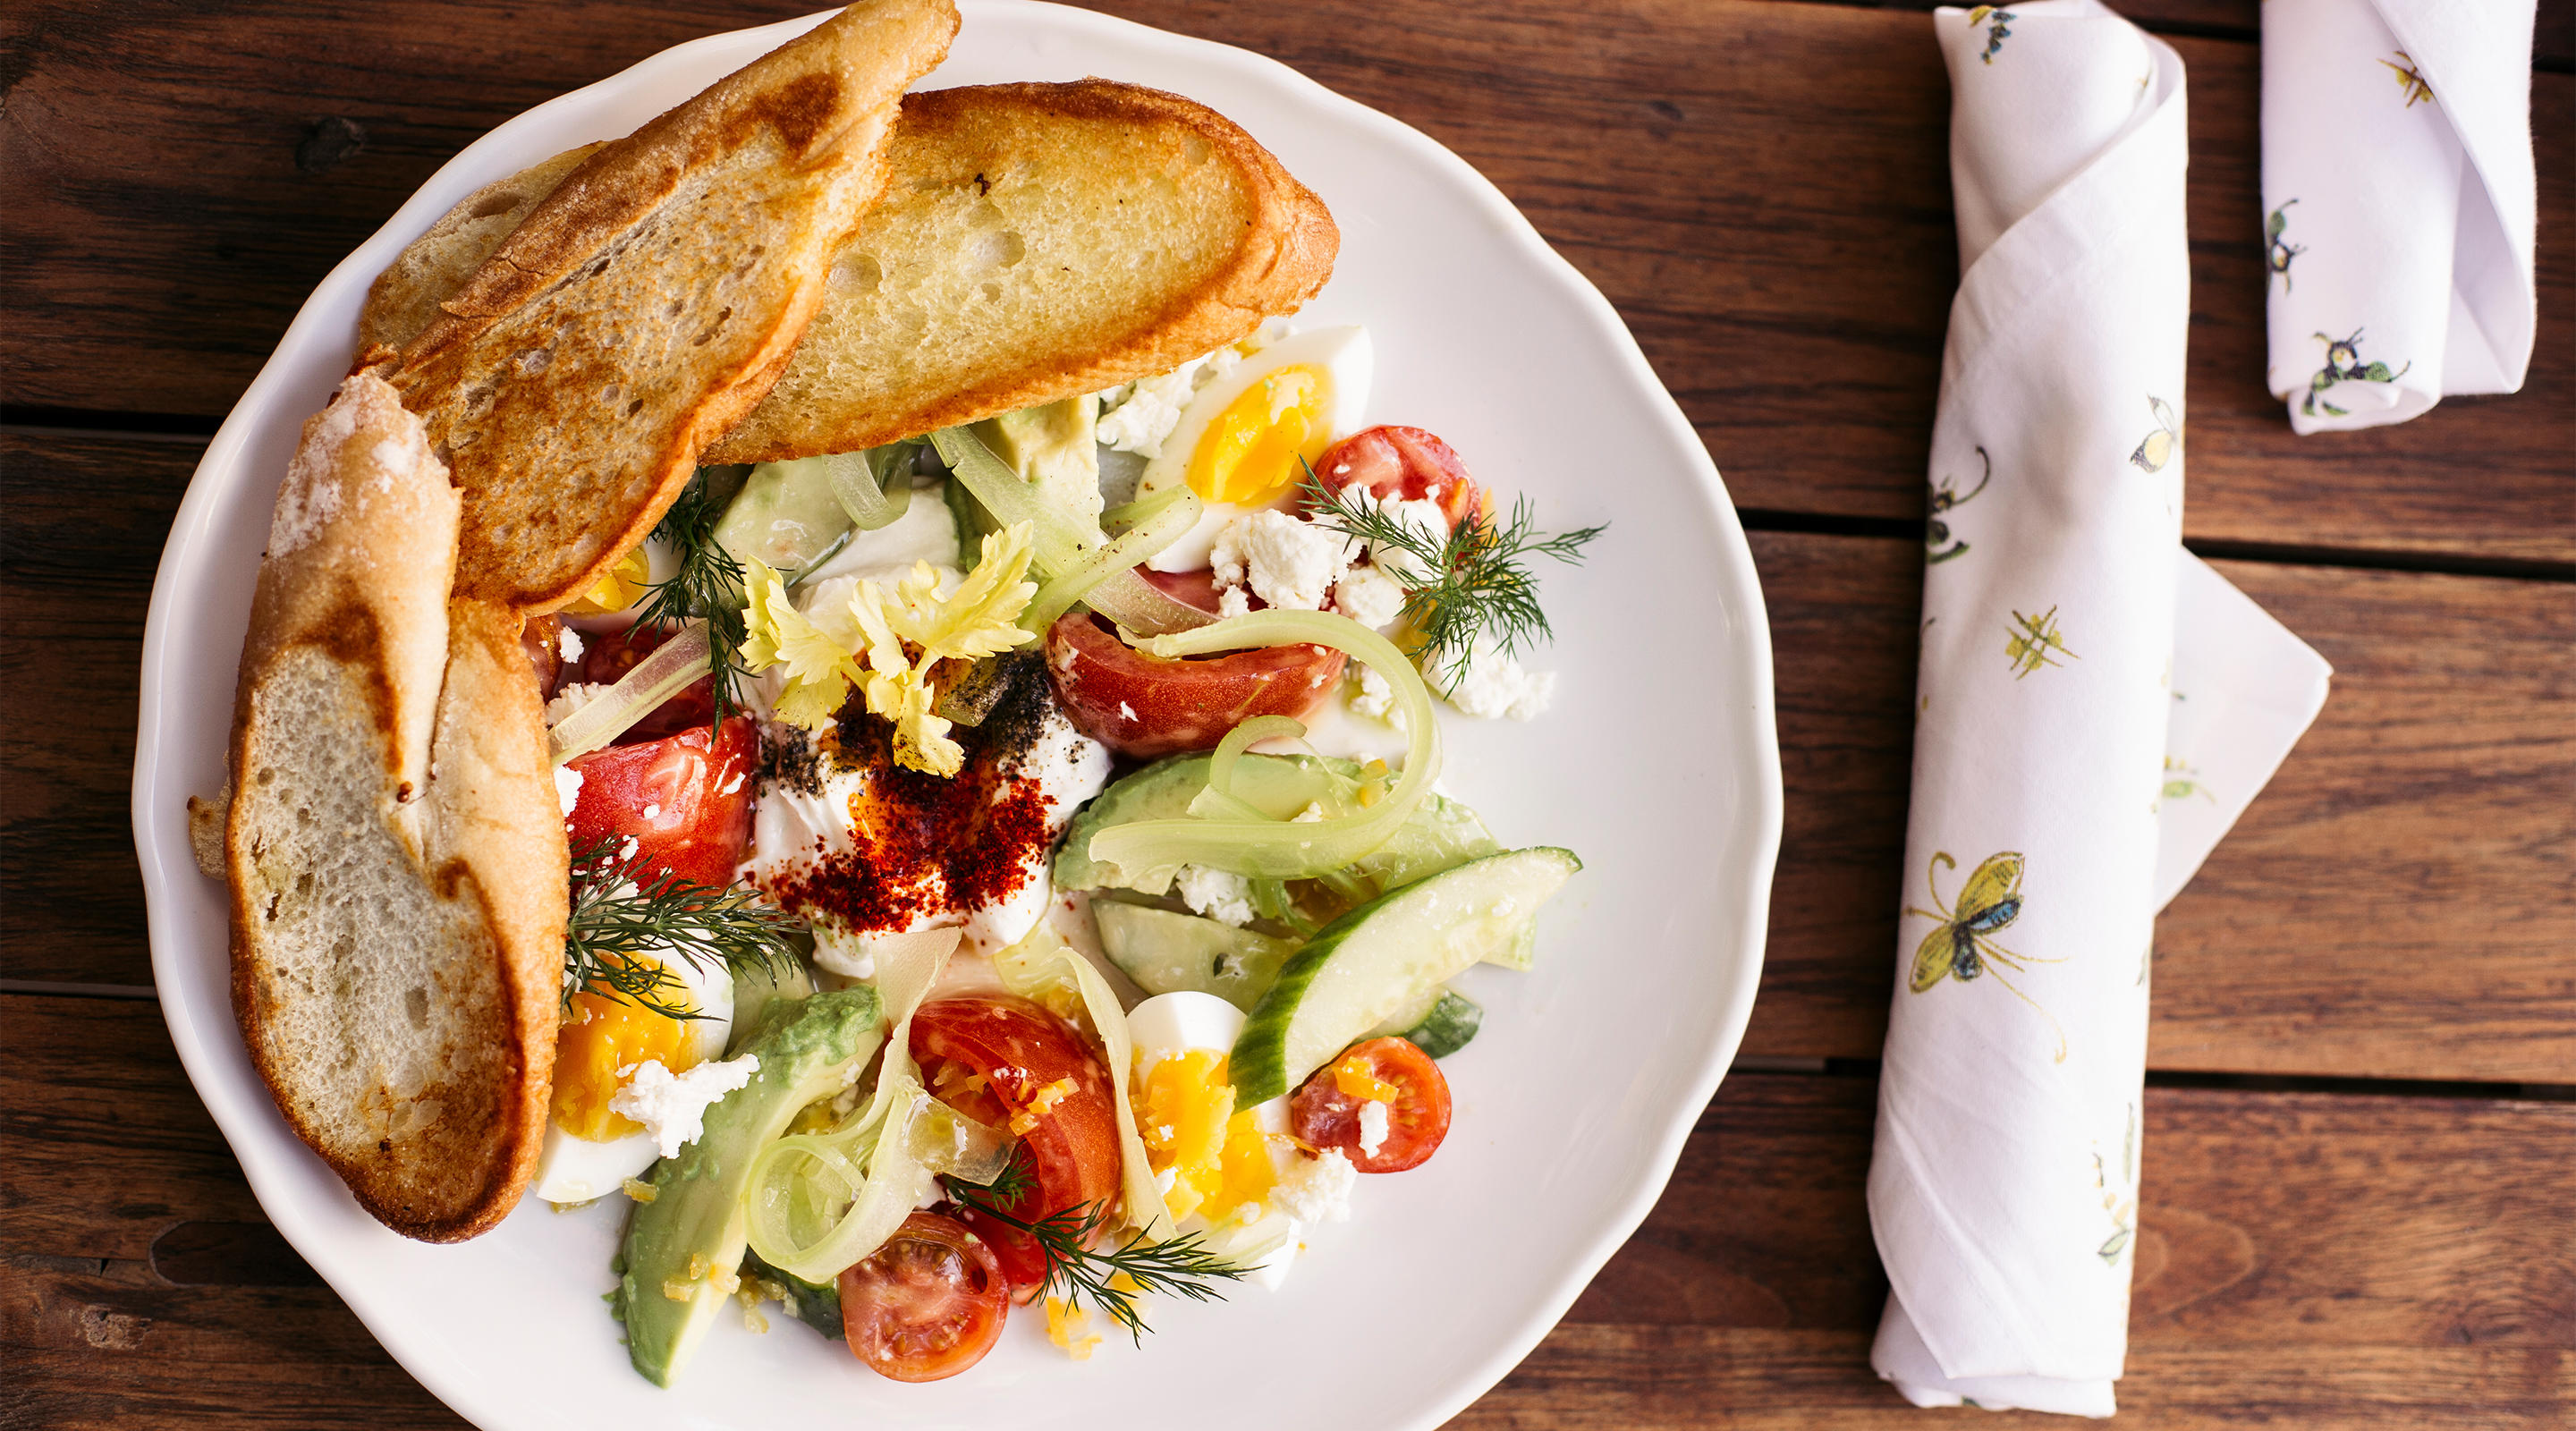 The Mediterranean plate makes for the perfect light lunch.